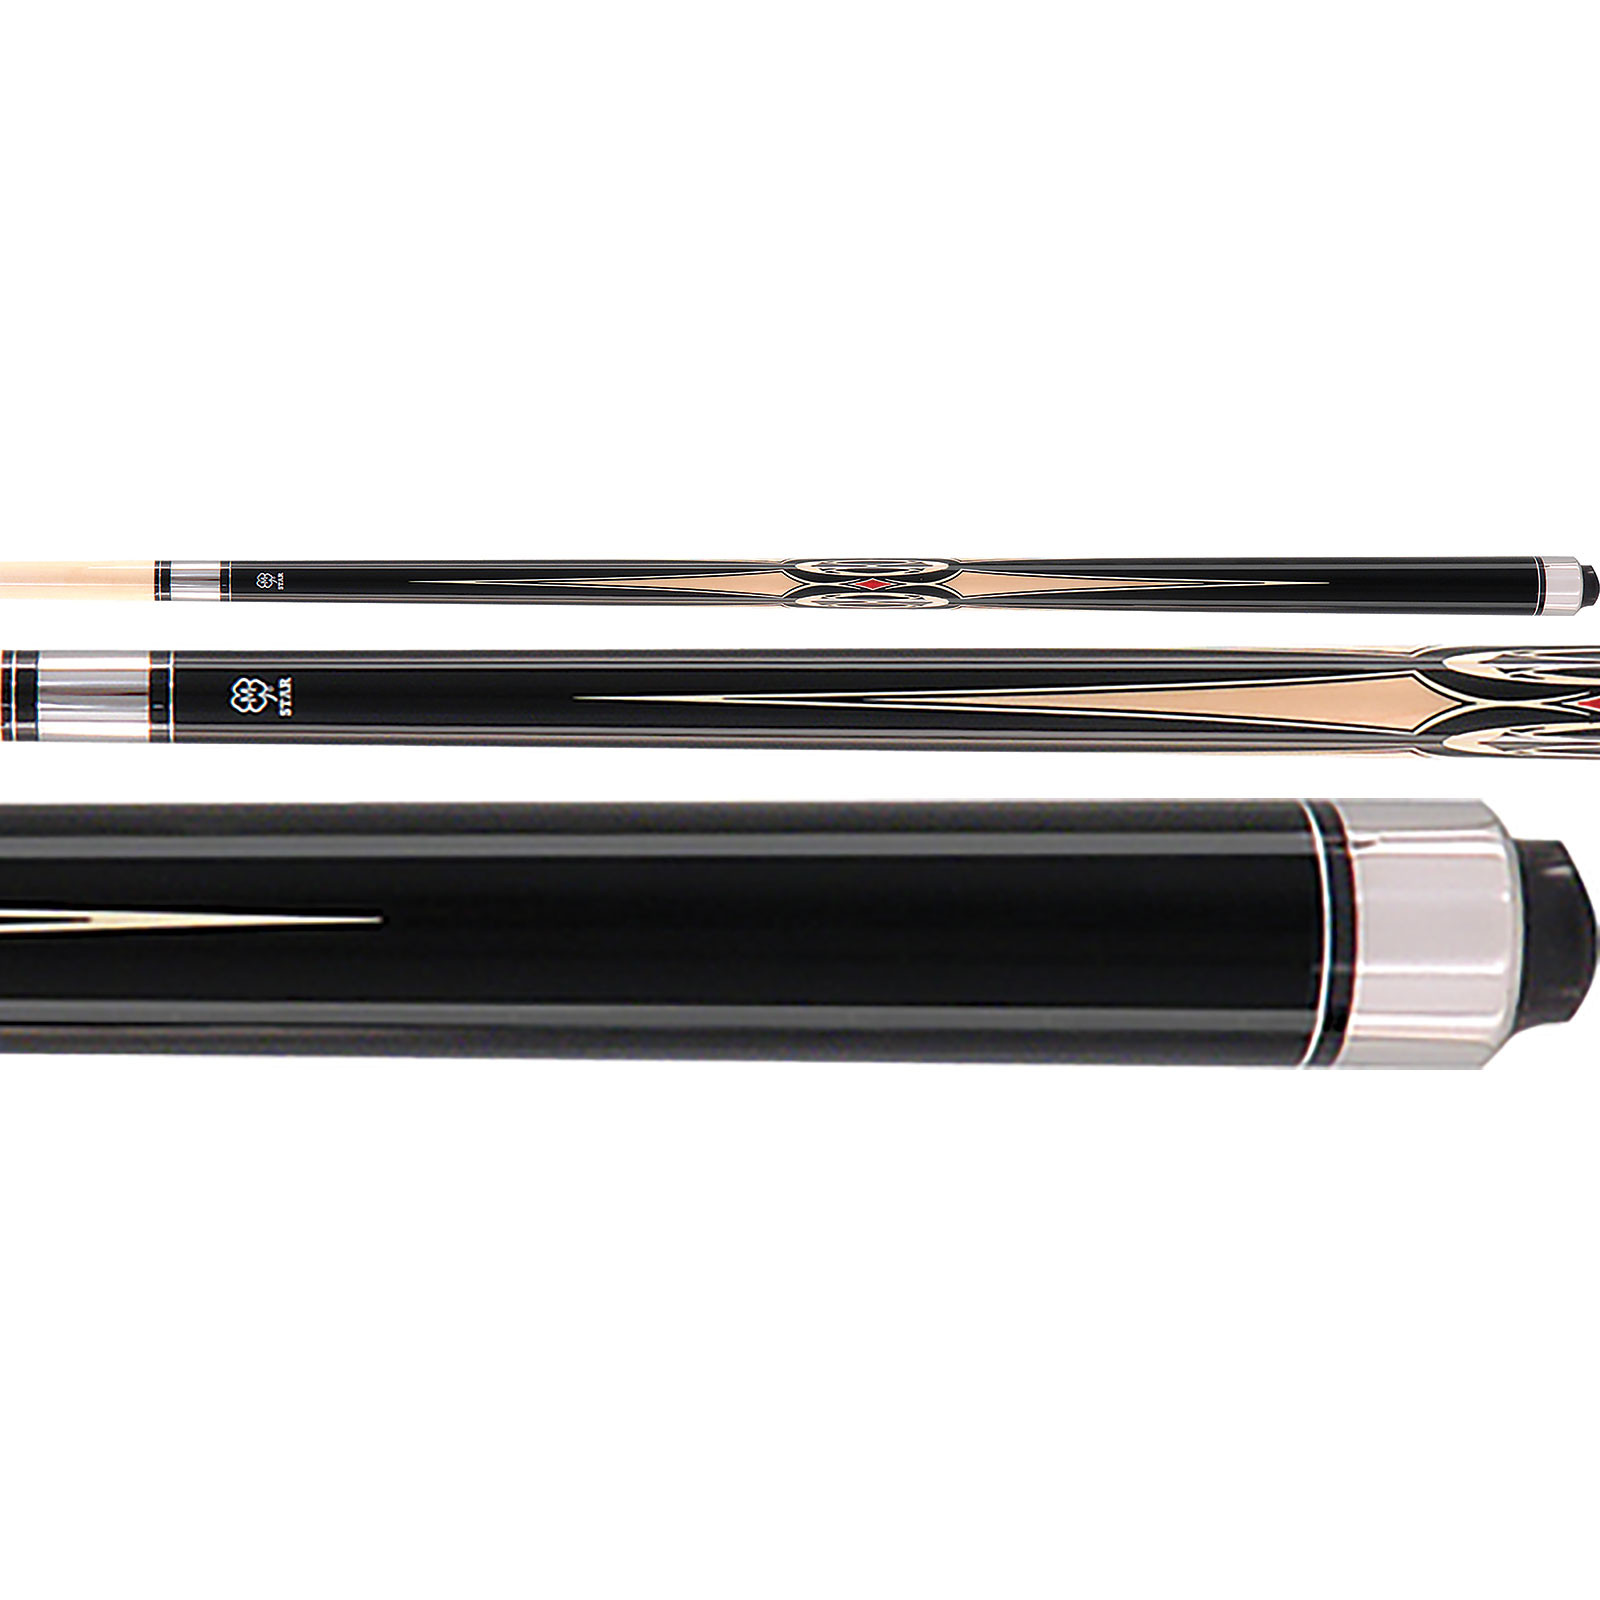 McDermott Star S4 Pool Cue - Black/Tan